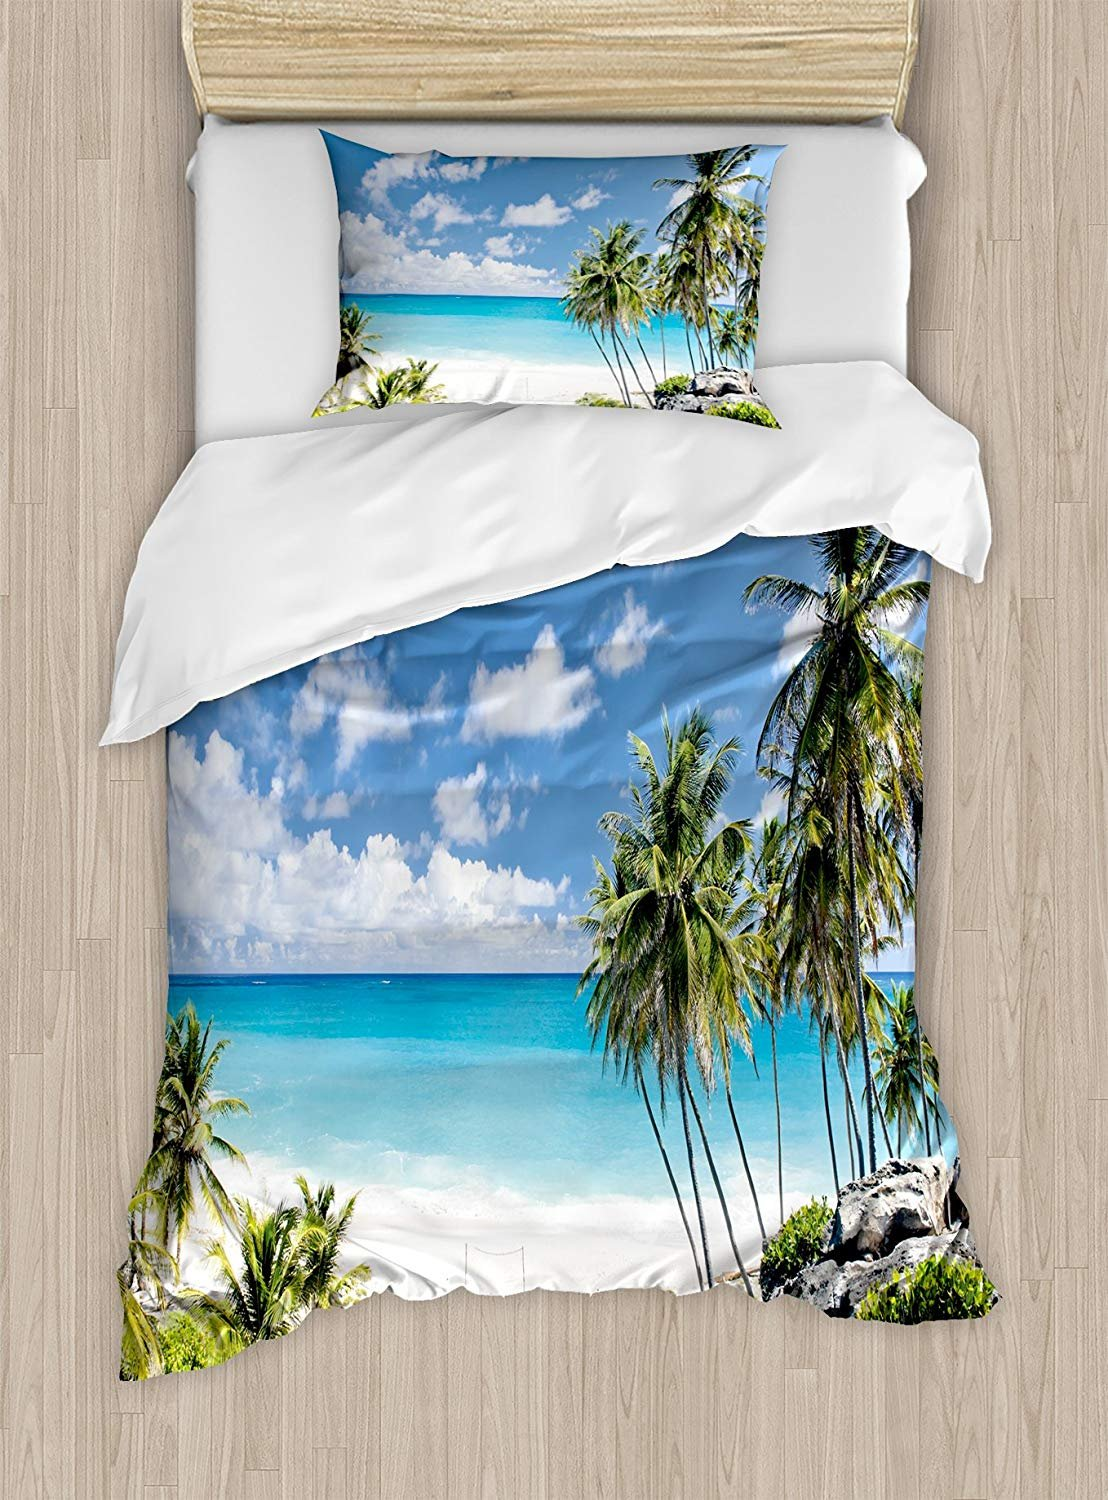 Twin XL Extra Long Bedding Set, Summer Duvet Cover Set, Bottom Bay Barbados Beach Tropical Palms Ocean Holiday Paradise Coast Charm Picture, Cosy House Collection 4 Piece Bedding Sets